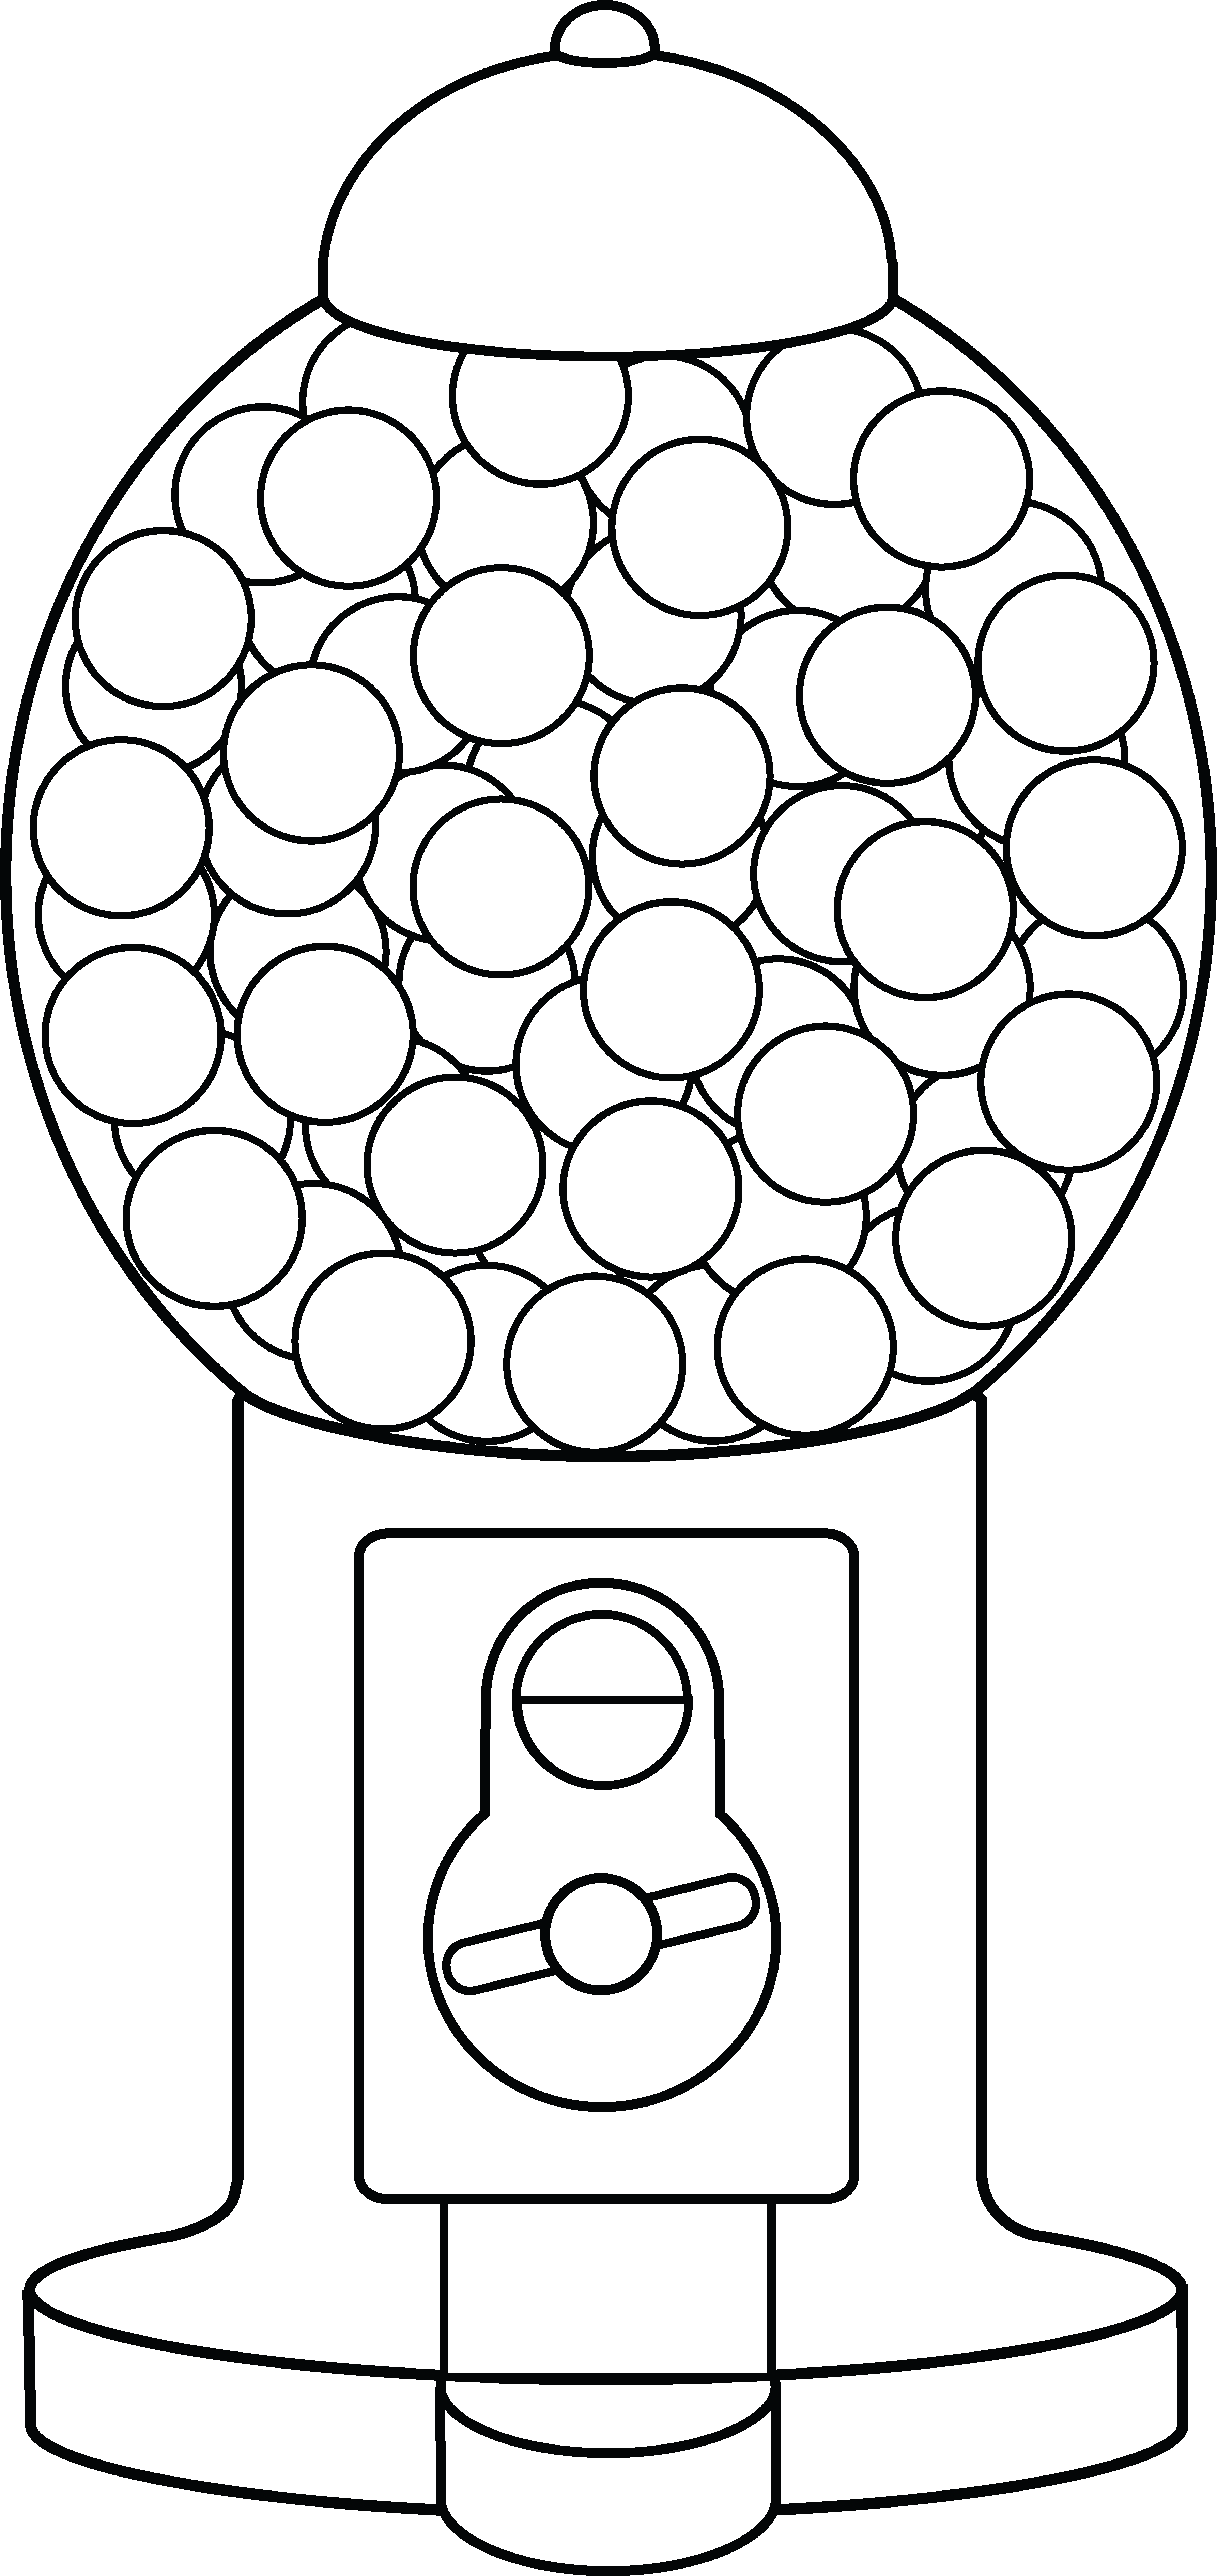 Free coloring page gumball machine - Coloring Sheets Gumball Machine Line Art